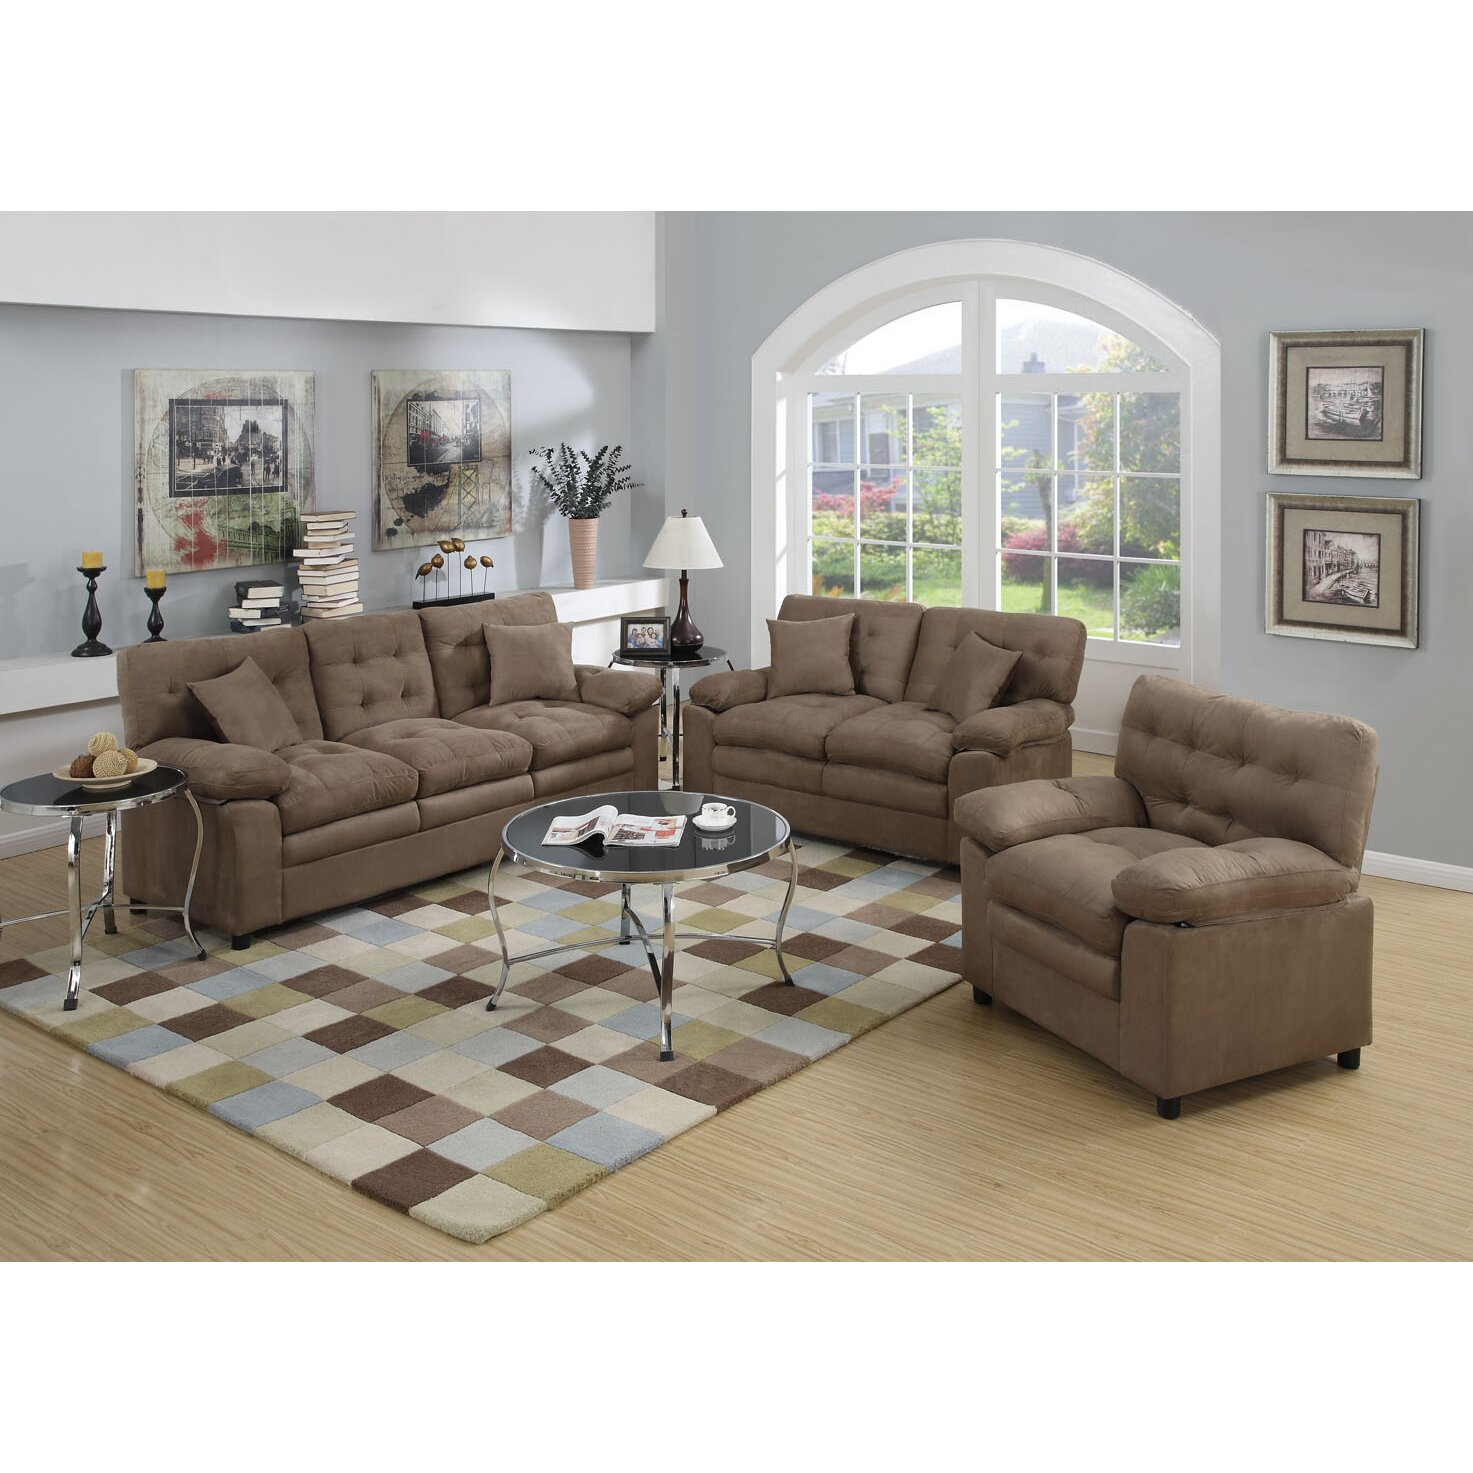 Poundex bobkona colona 3 piece living room set reviews for Family room sofa sets